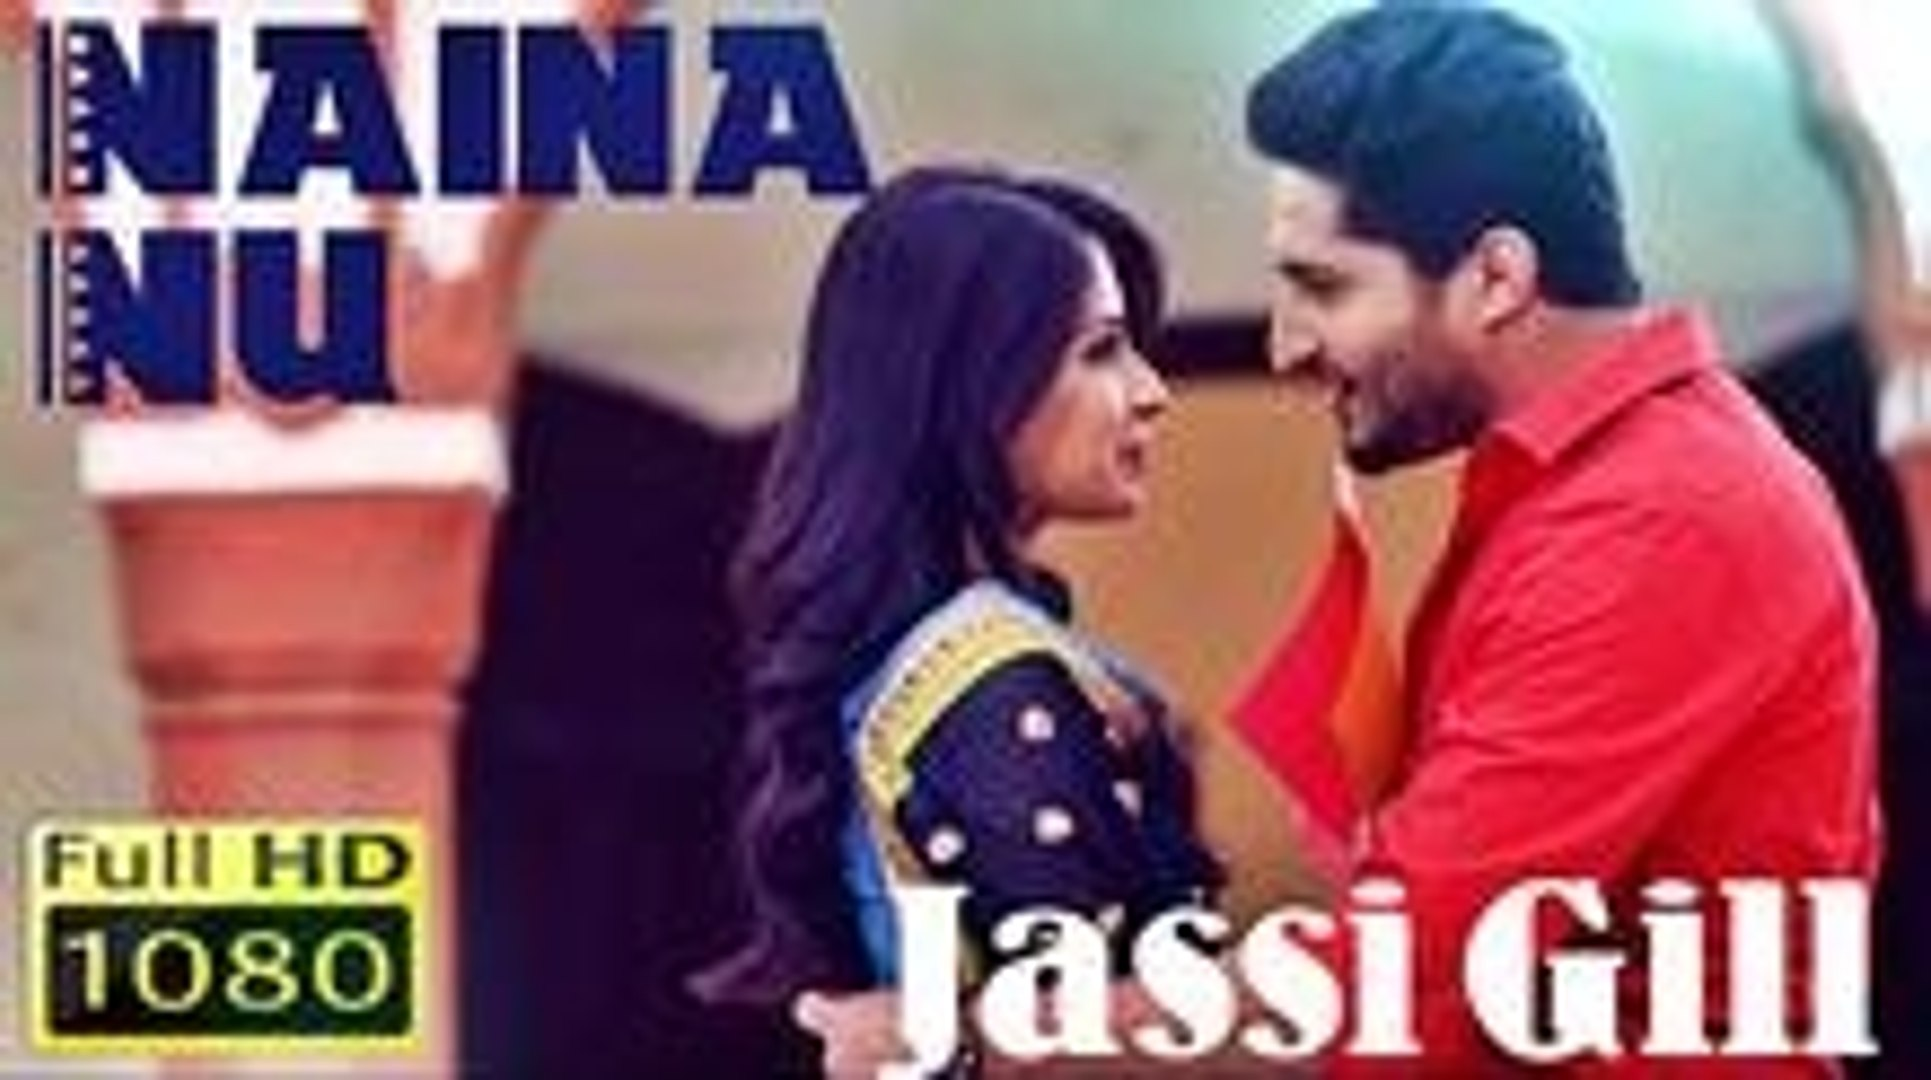 Naina Nu Full Video Song by Jassi Gill - Latest Punjabi Songs 2014 HD